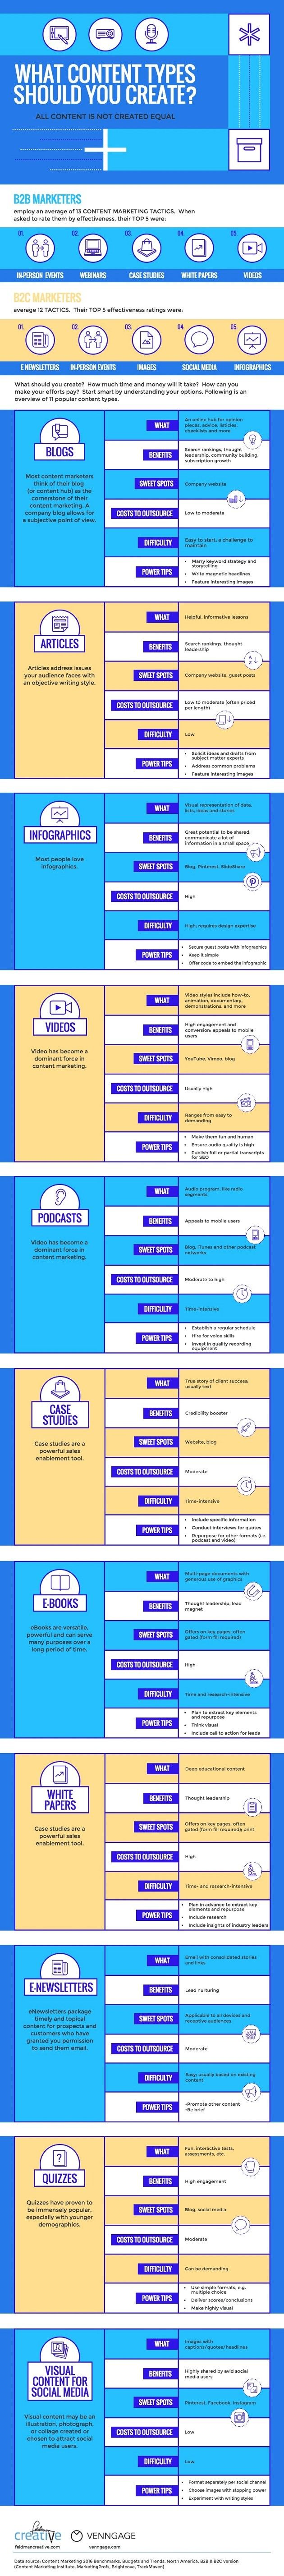 Content - What Content Types Should You Create? [Infographic] : MarketingProfs Article